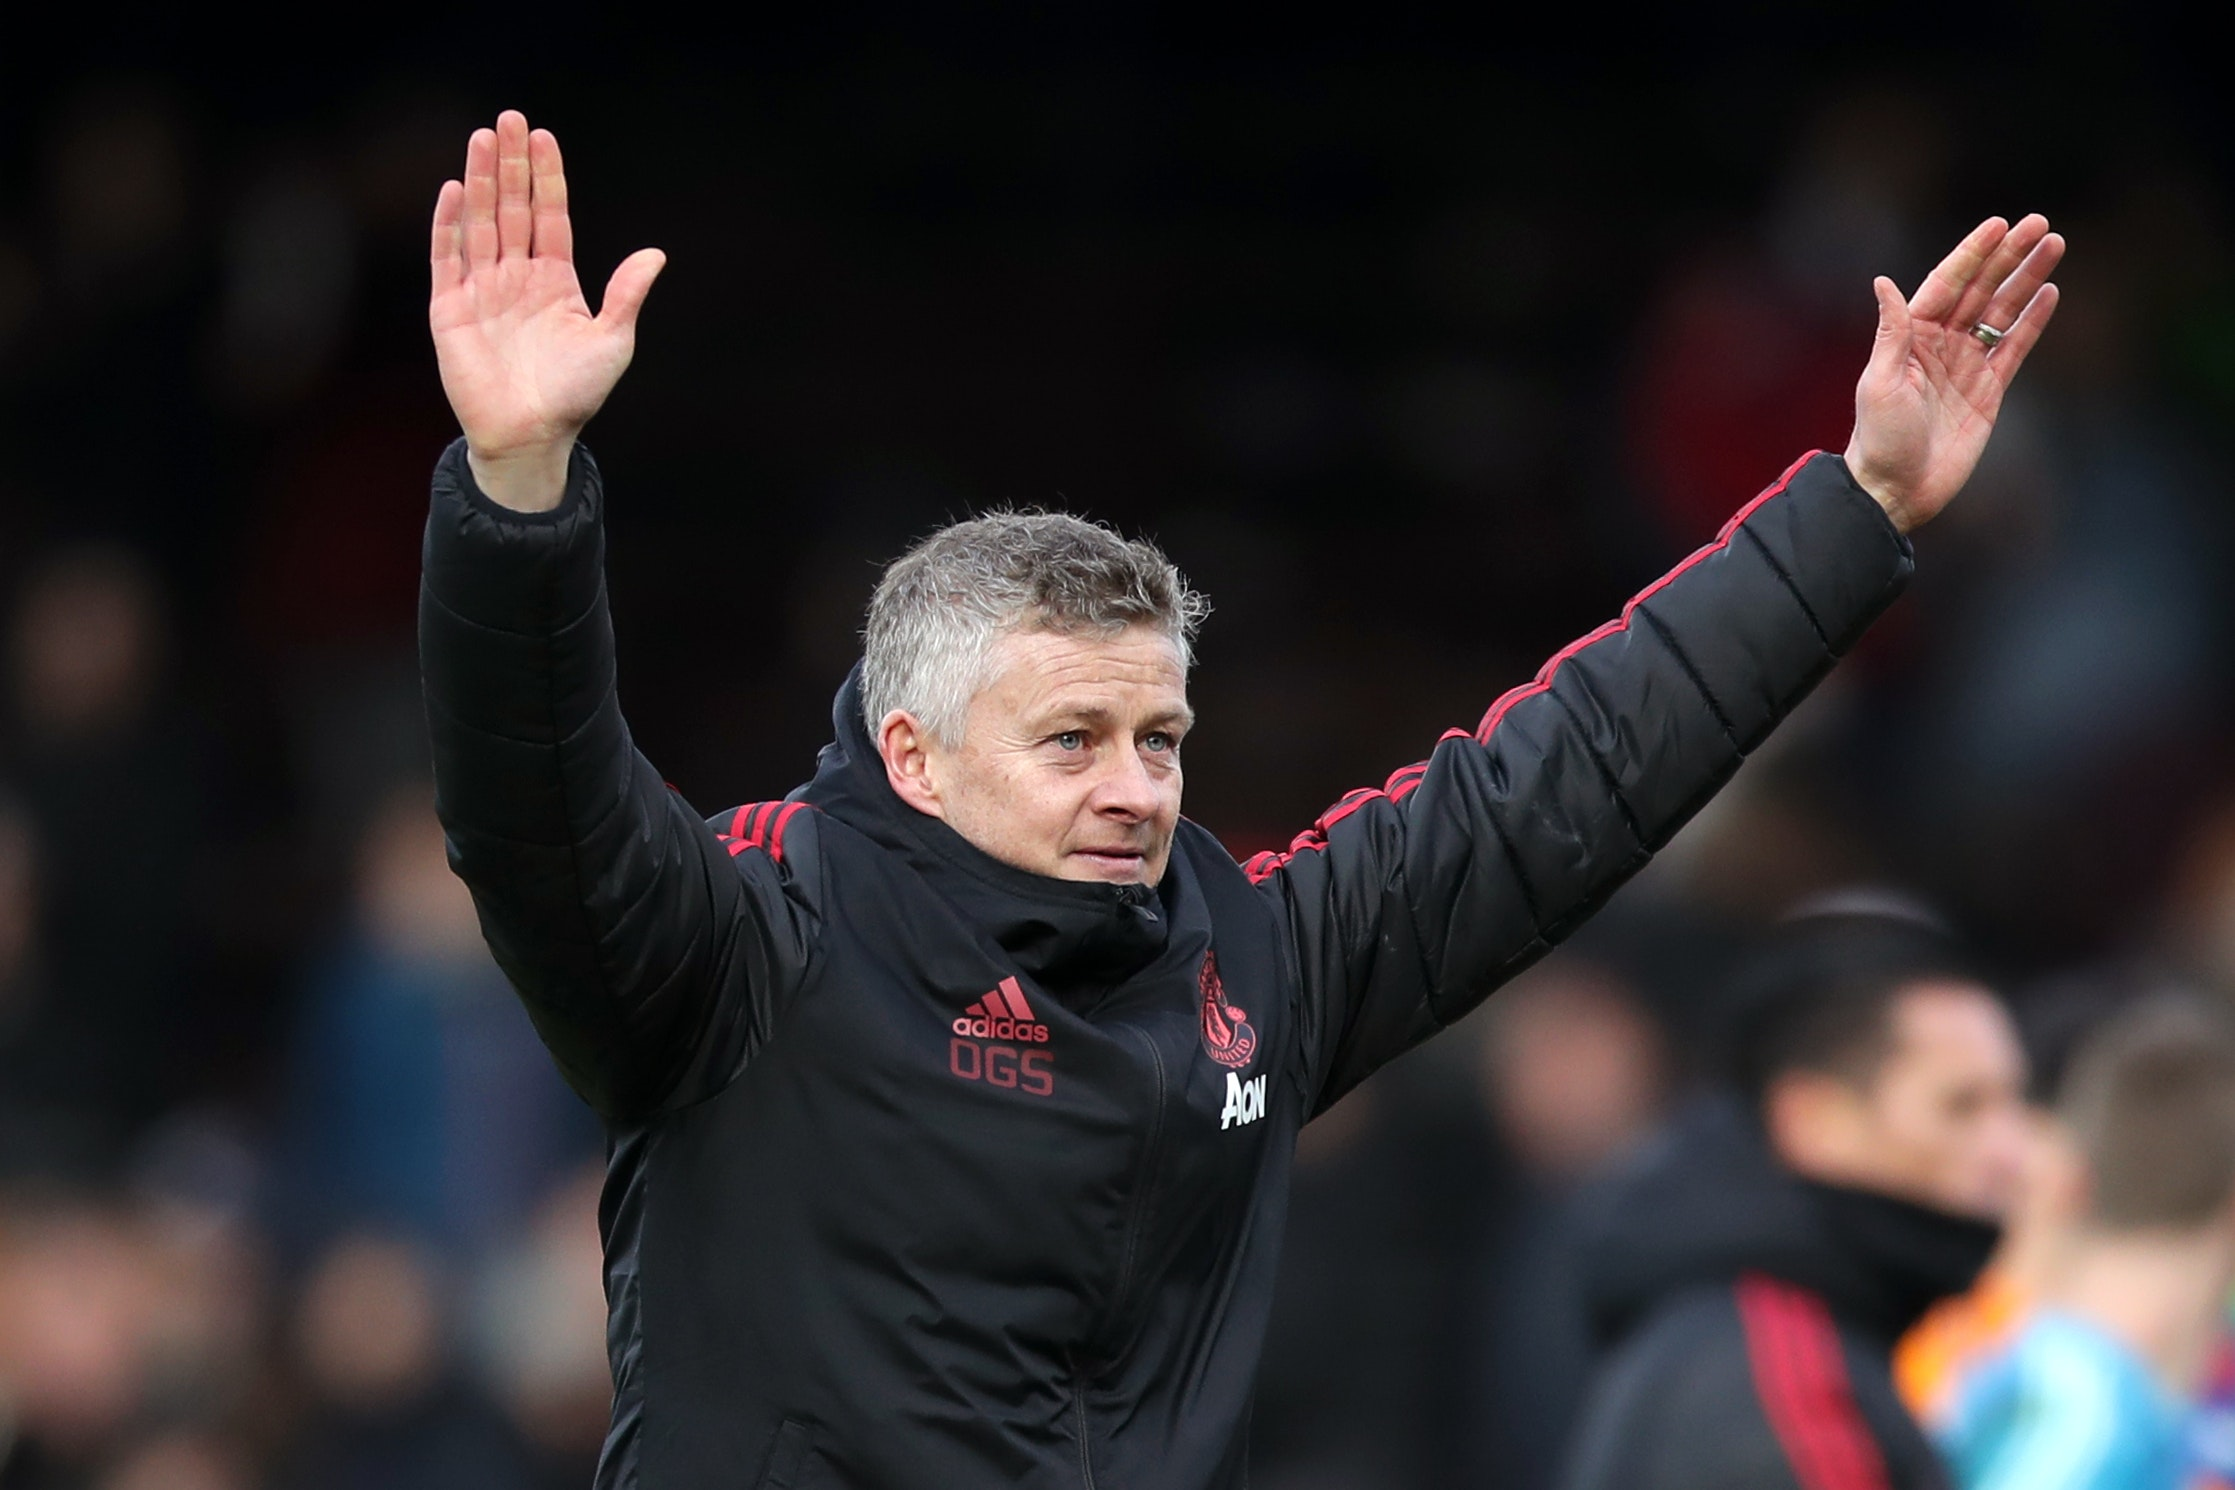 Ole Gunnar Solskjaer faces his biggest test yet as Manchester United interim manager with a Champions League tie against Paris St Germain